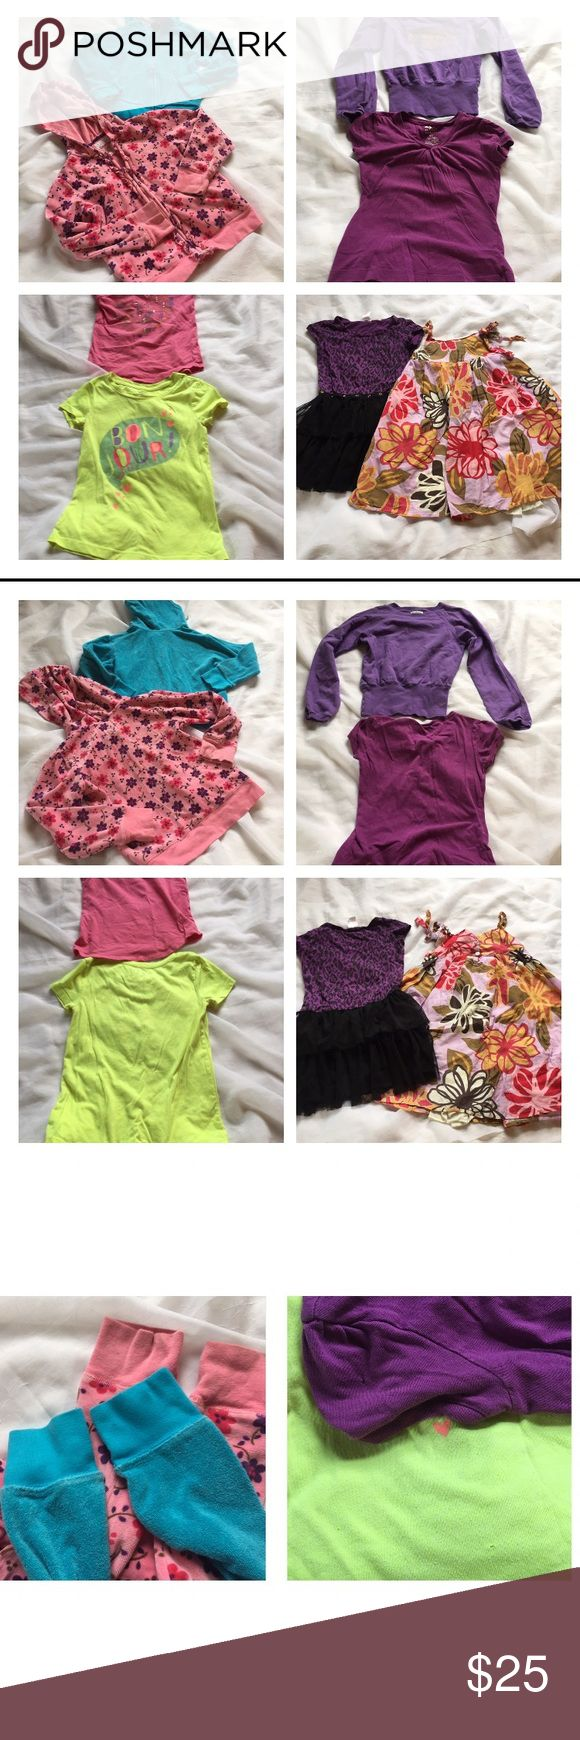 Girls tops lot, 6/6X (8 pieces) Girls tops bundle - size 6/6X. Includes: dolce and gabanna jr sweatshirt, flowers by Zoe and Oshkosh hoodies, 2 Gap and 1 old navy tee shirts, sweet heart rose and xhilaration dresses. Few small blemishes shown in pictures. 🦊 I do not trade or model. Please use measurements provided and ask any questions prior to purchasing. My goal is always 5 star customers. Thanks! 😊 Shirts & Tops